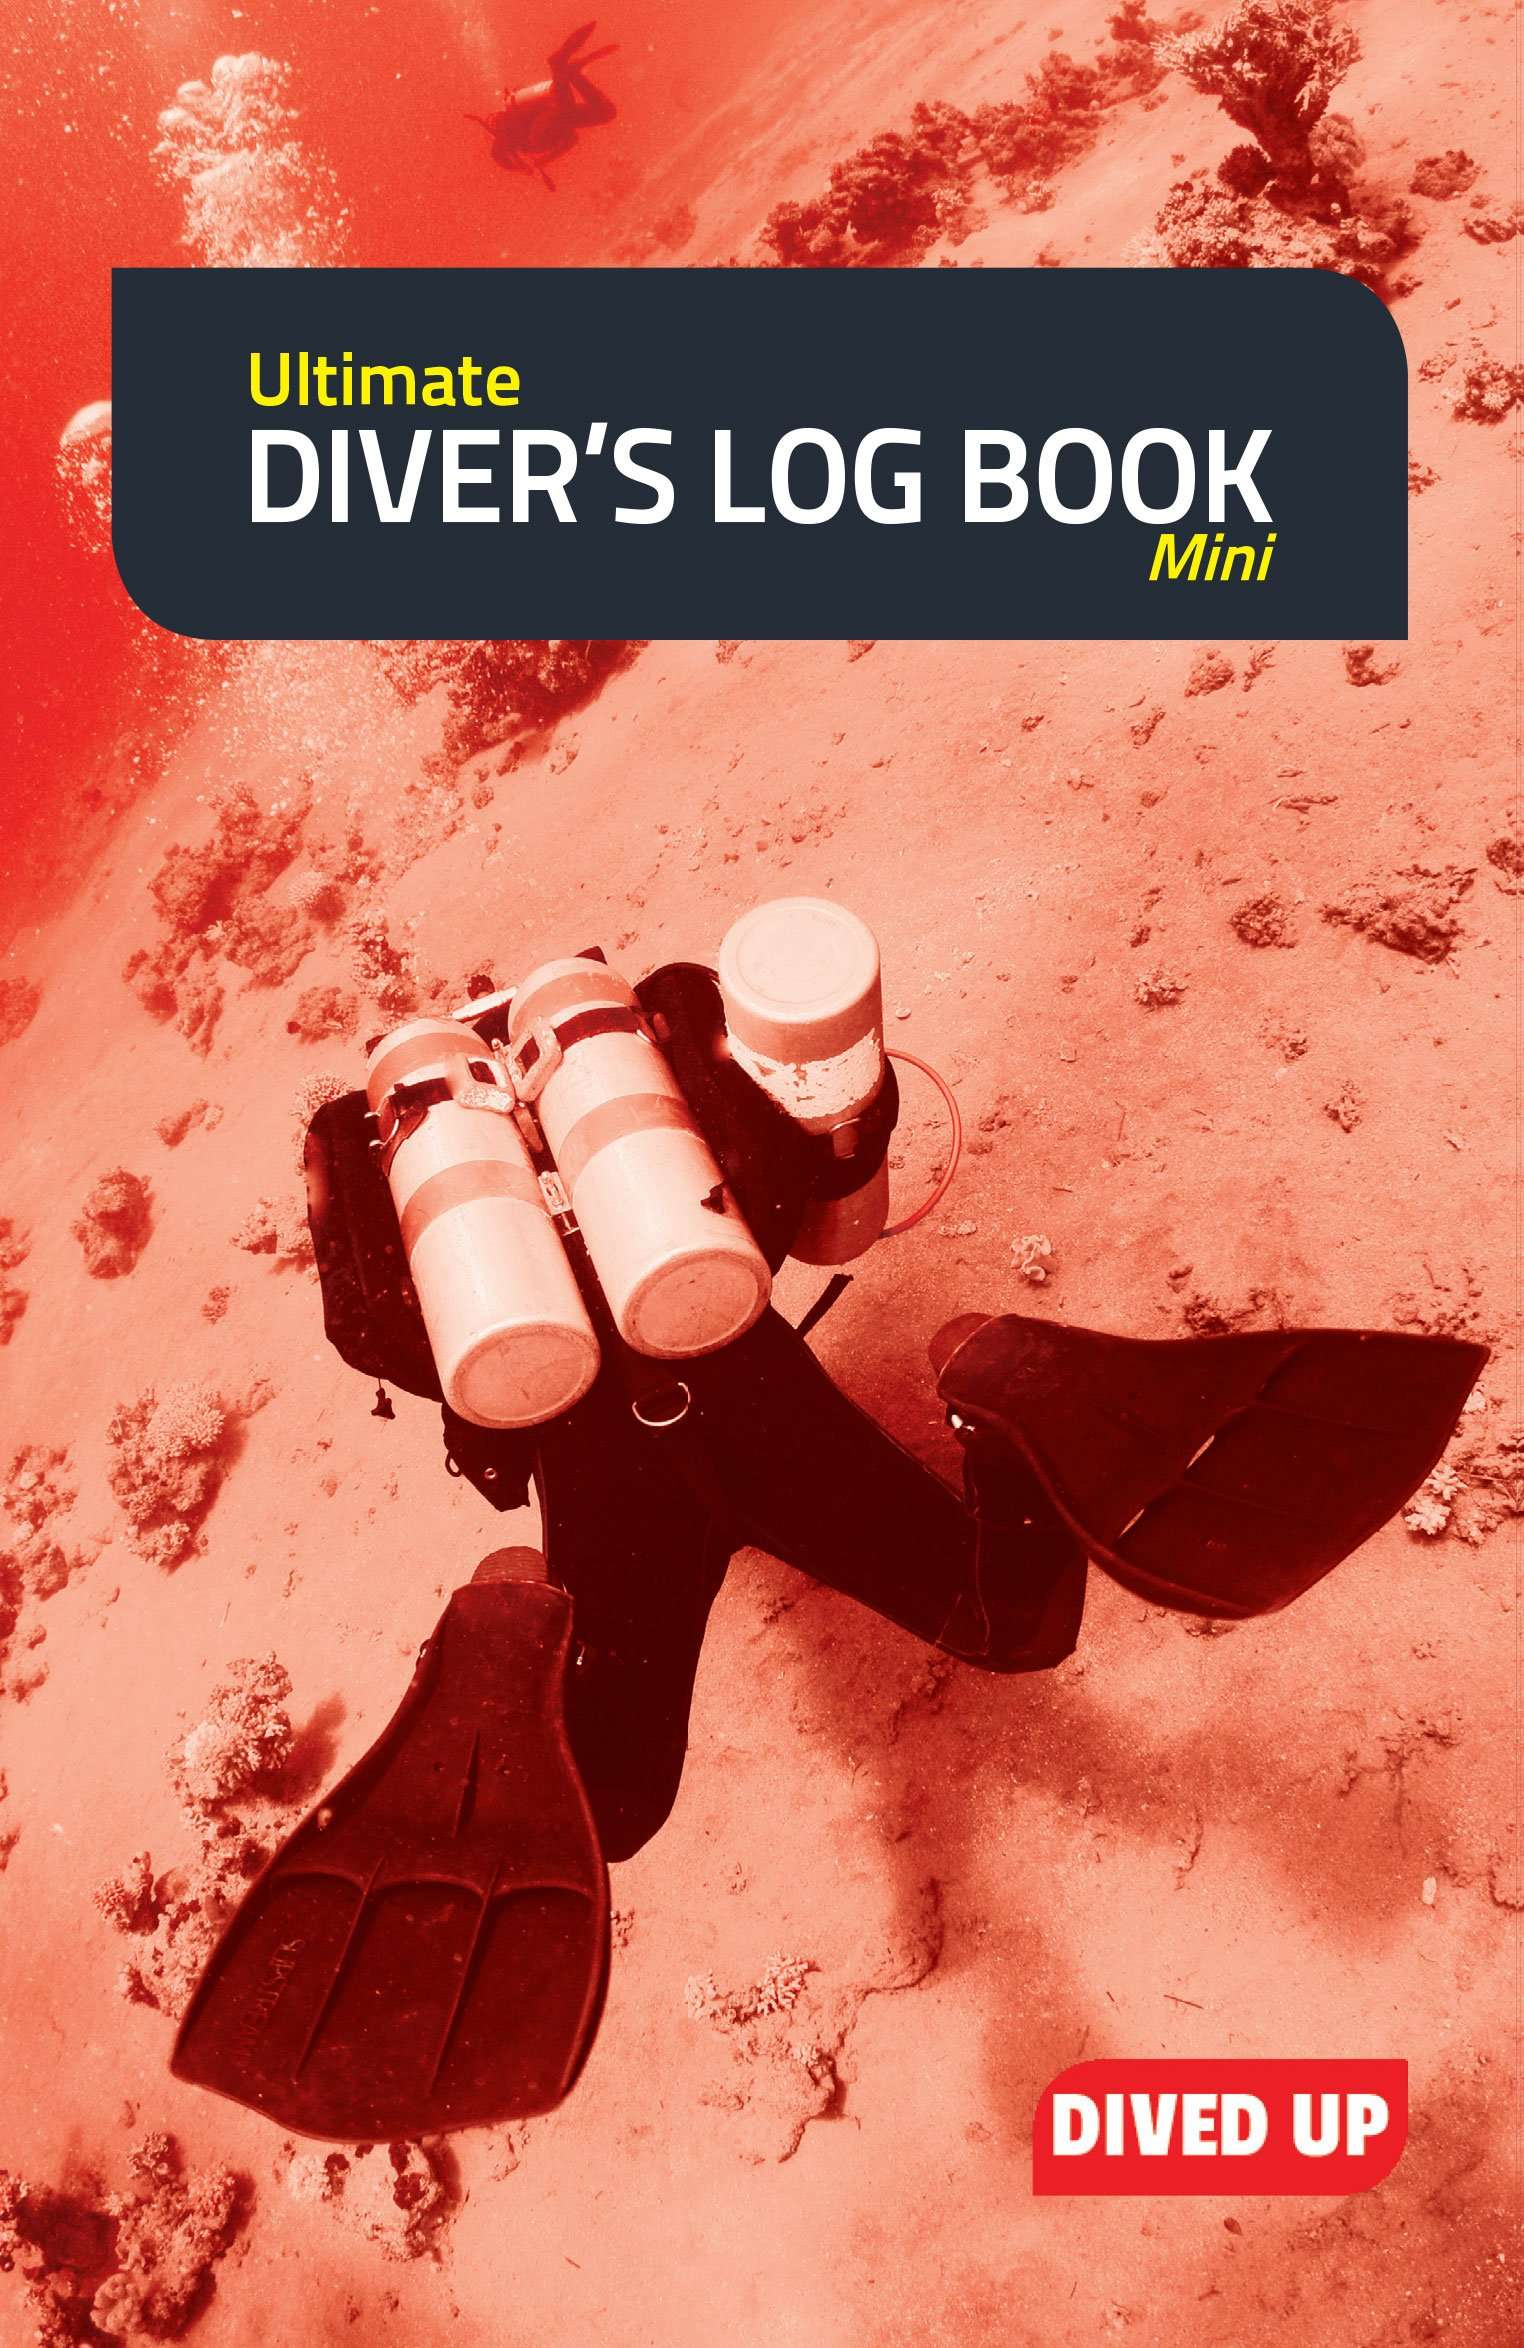 9781909455078 Ultimate Diver's Log Book (mini) – cover